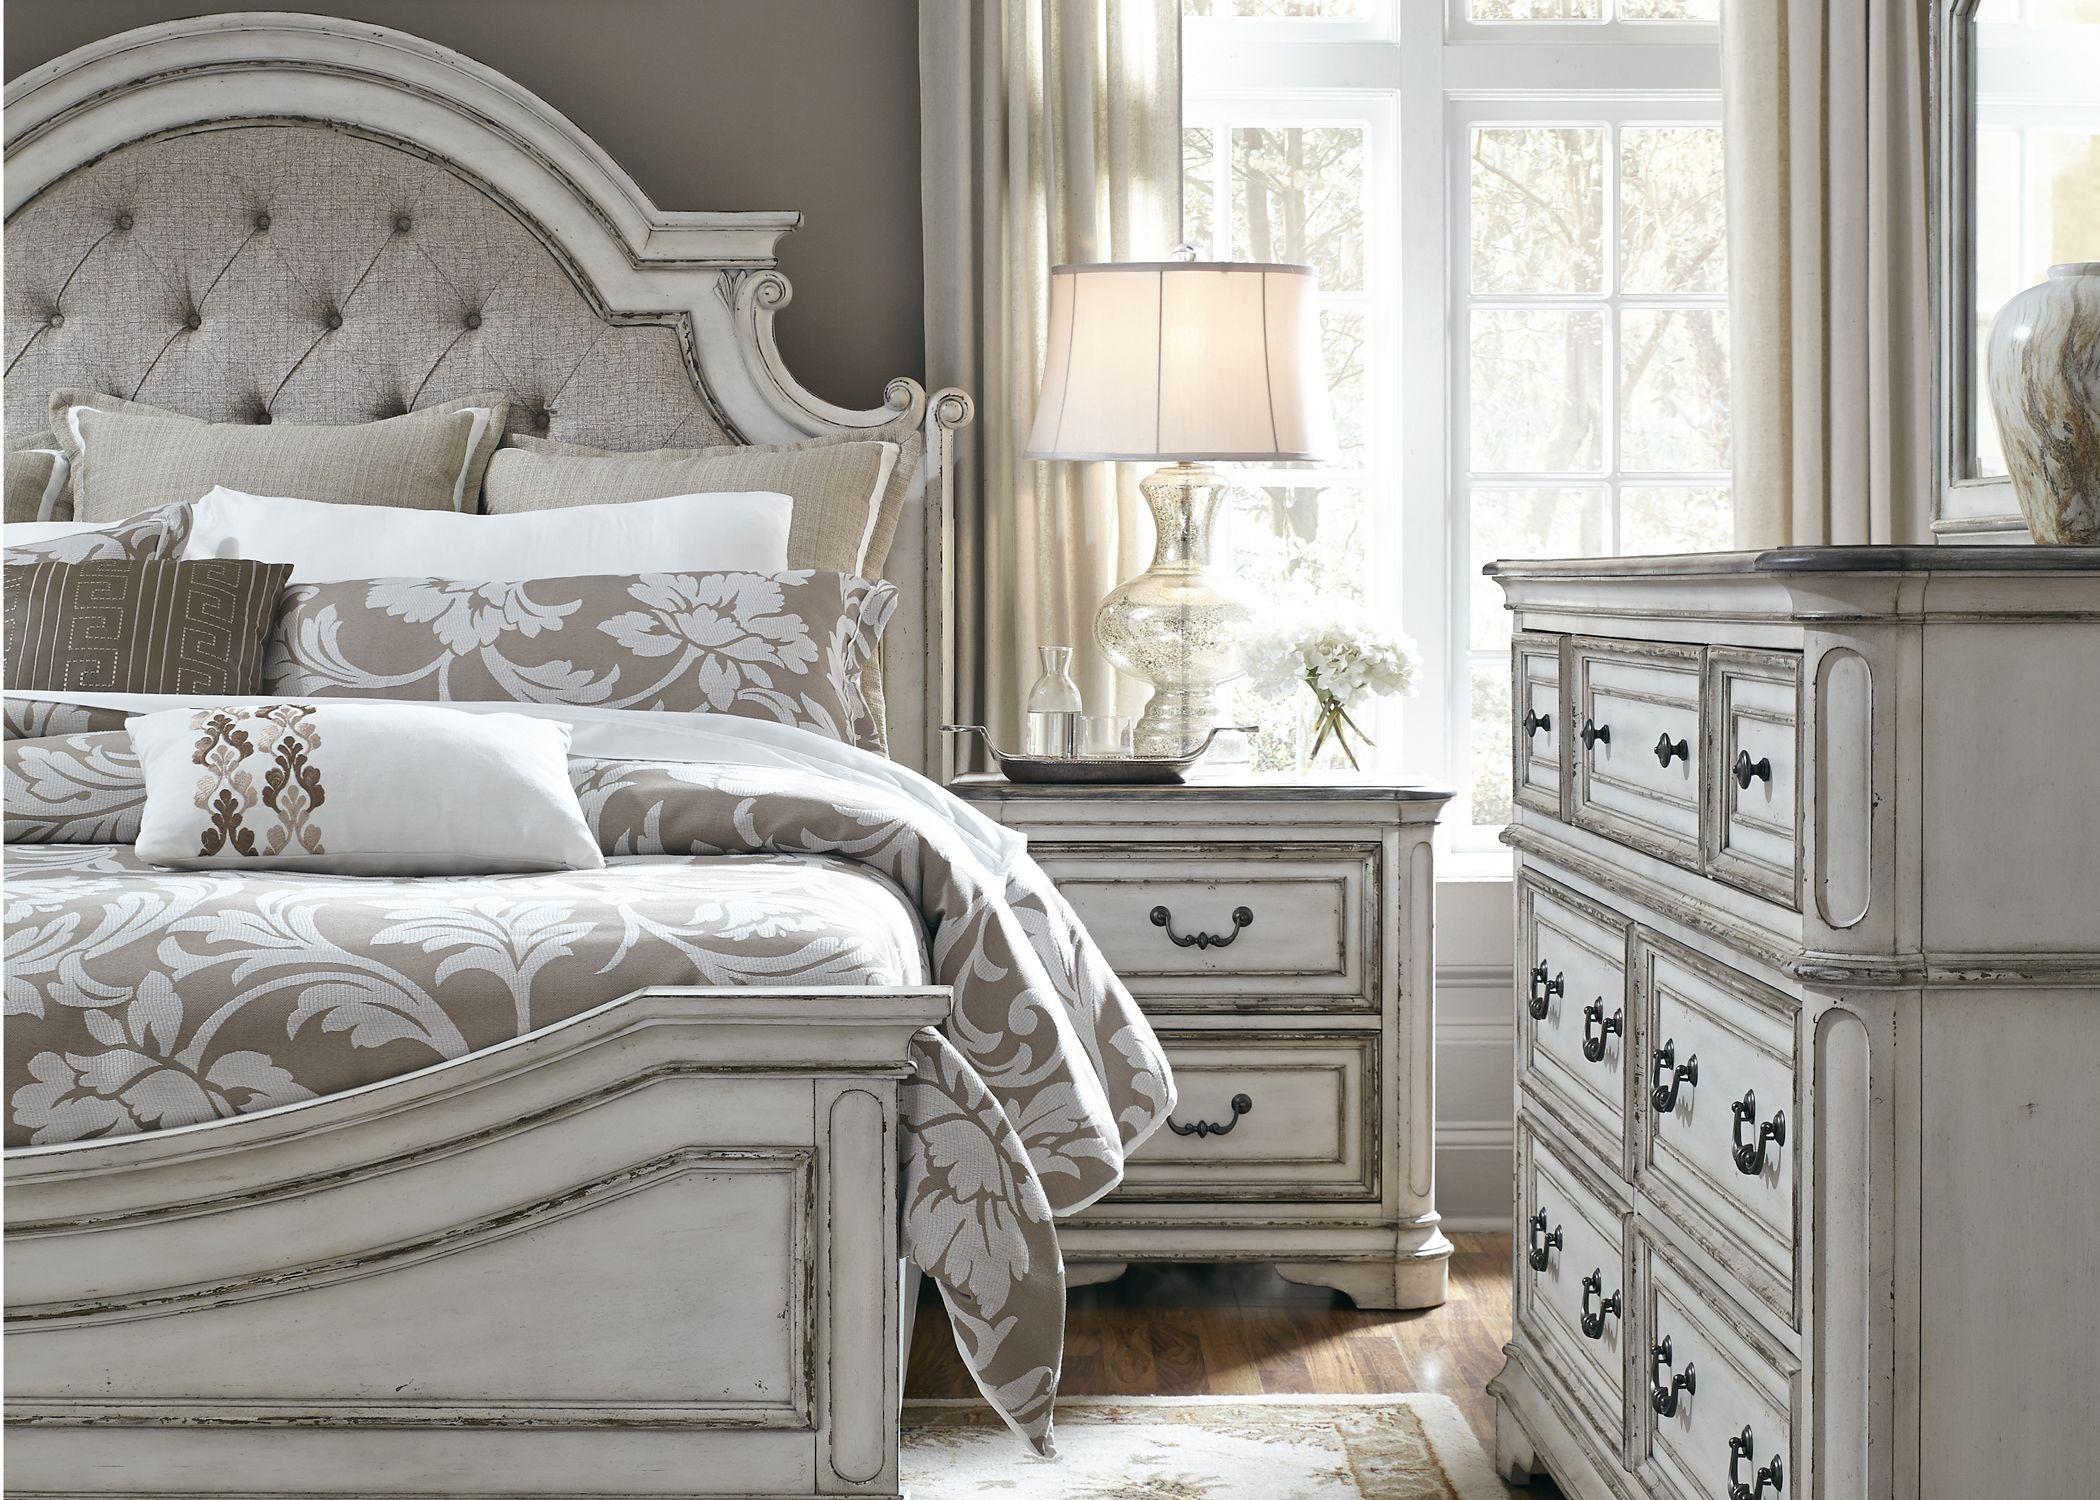 Magnolia manor antique white upholstered panel bedroom set 244 br qub liberty new home ideas Master bedroom with grey furniture